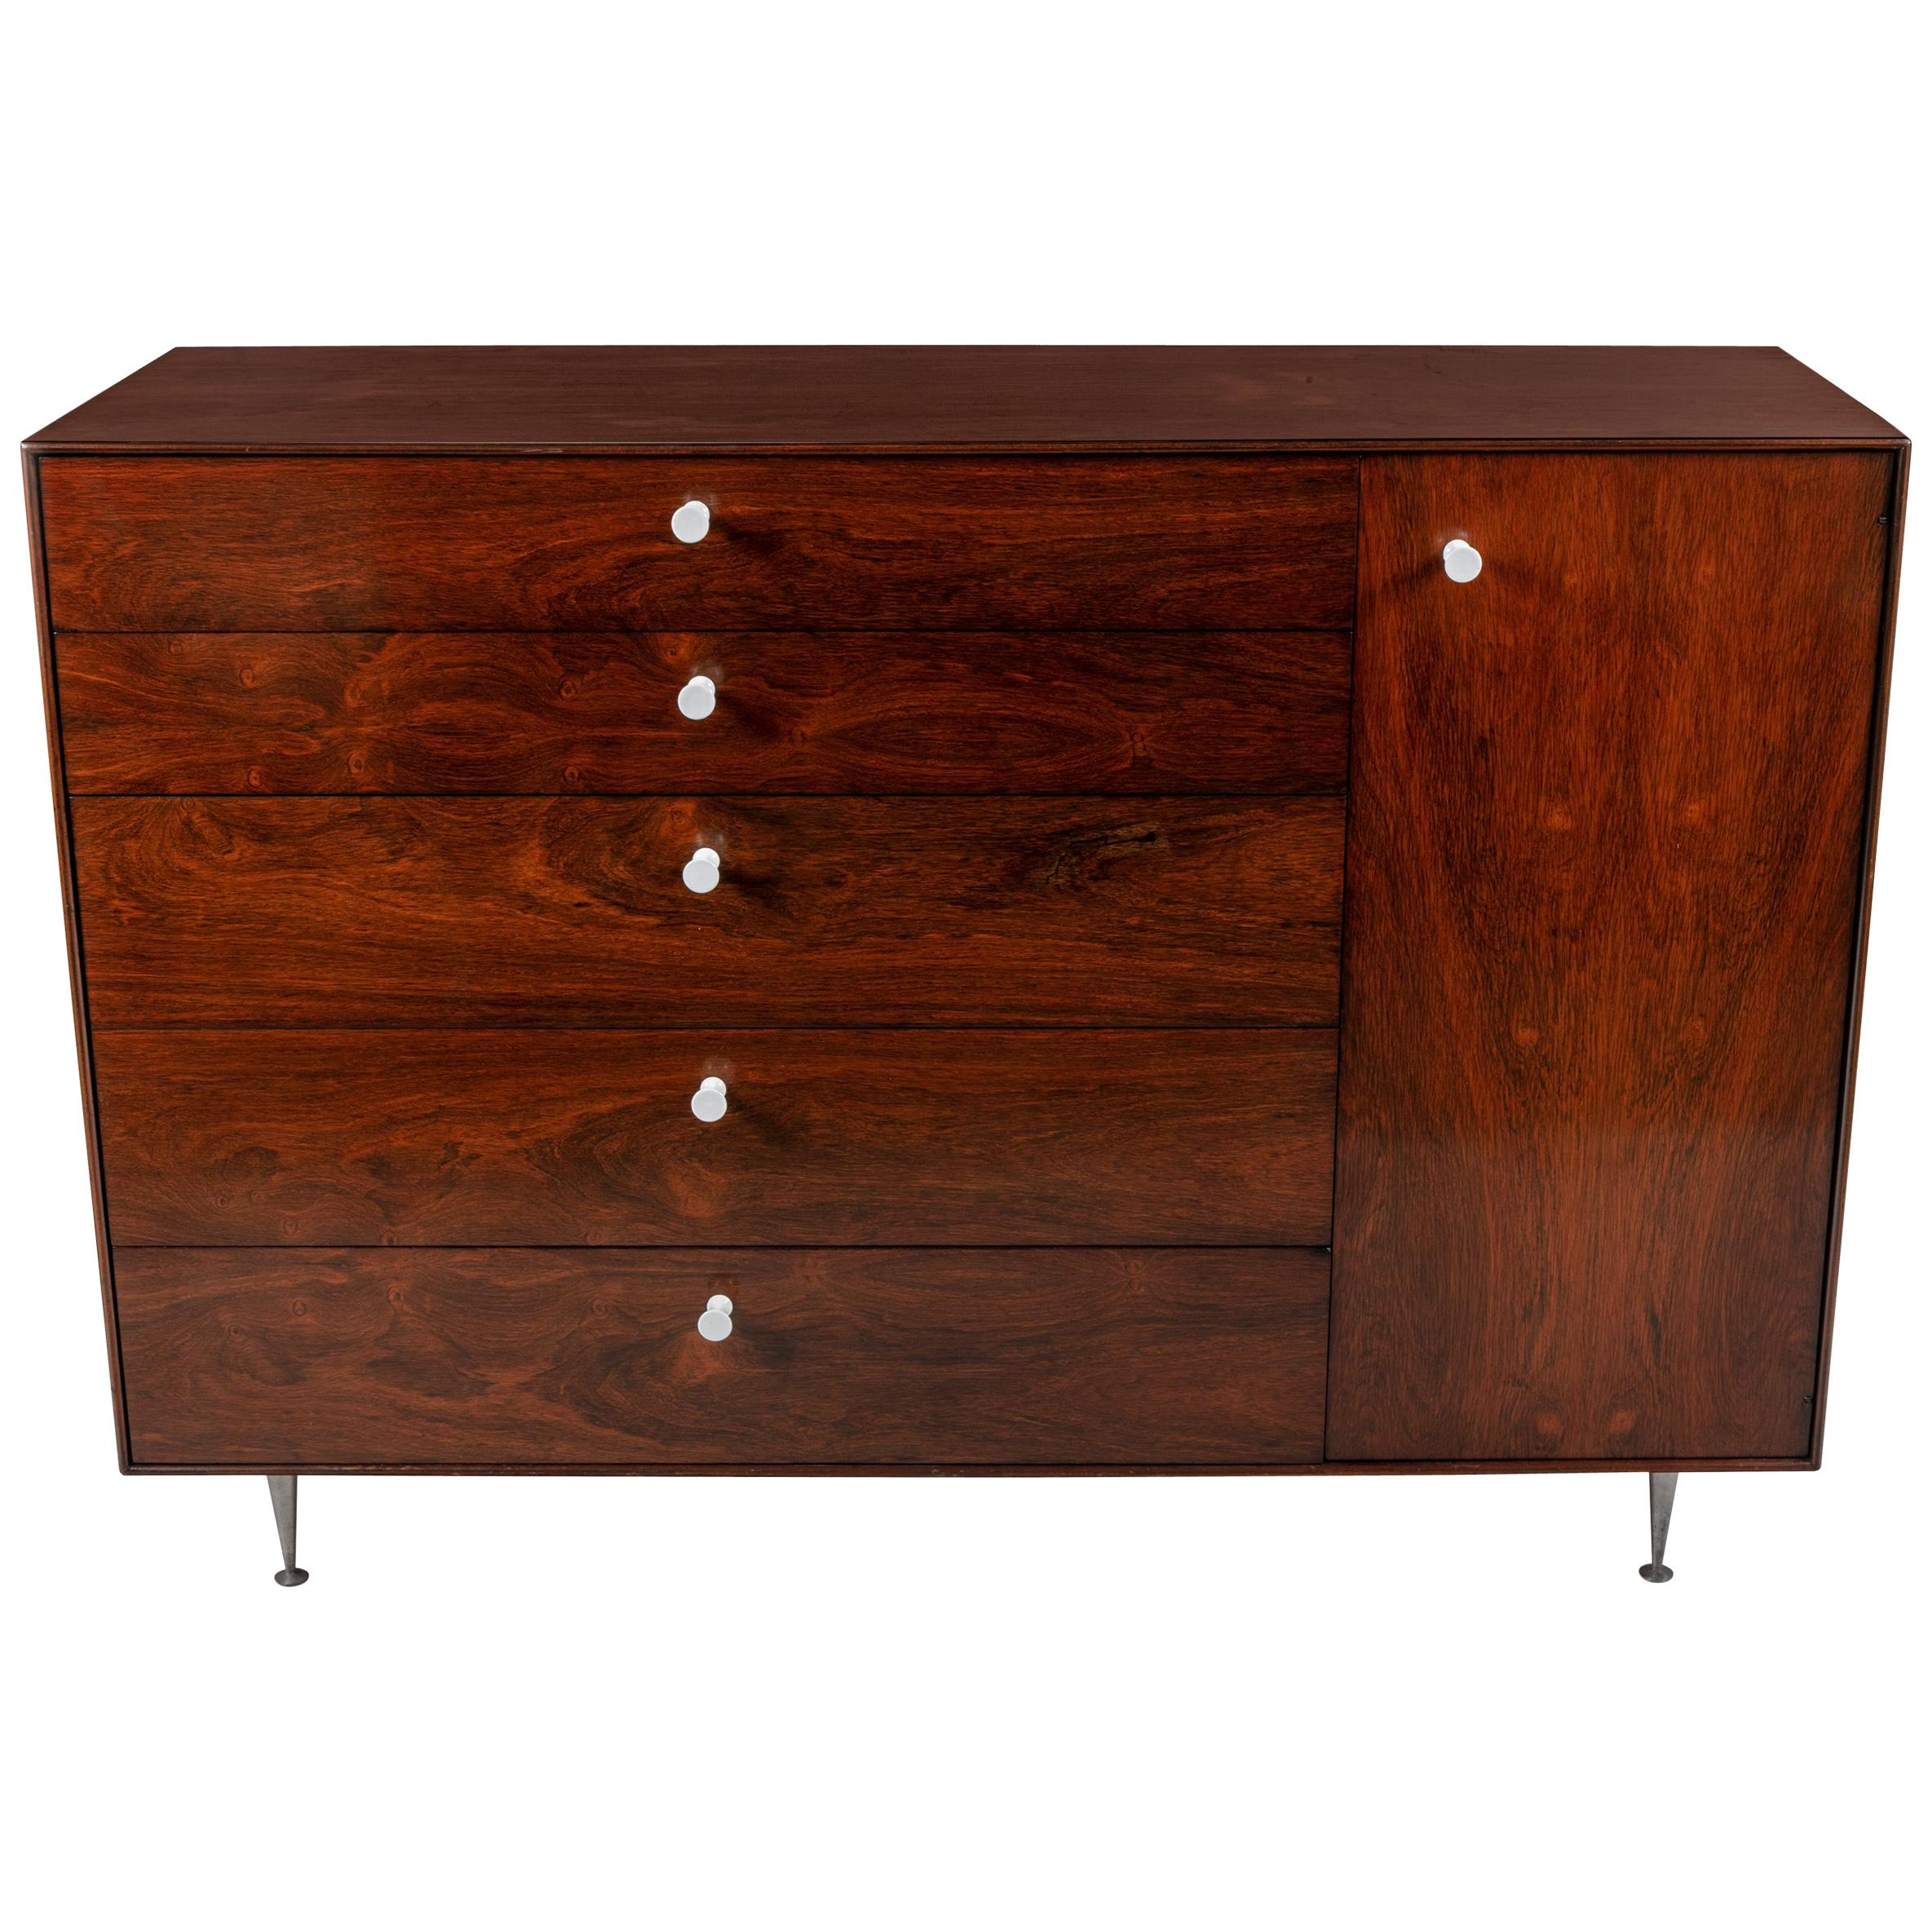 Etonnant George Nelson Rosewood Thin Edge Chest Of Drawers/Cabinet, Herman Miller,  1950s For